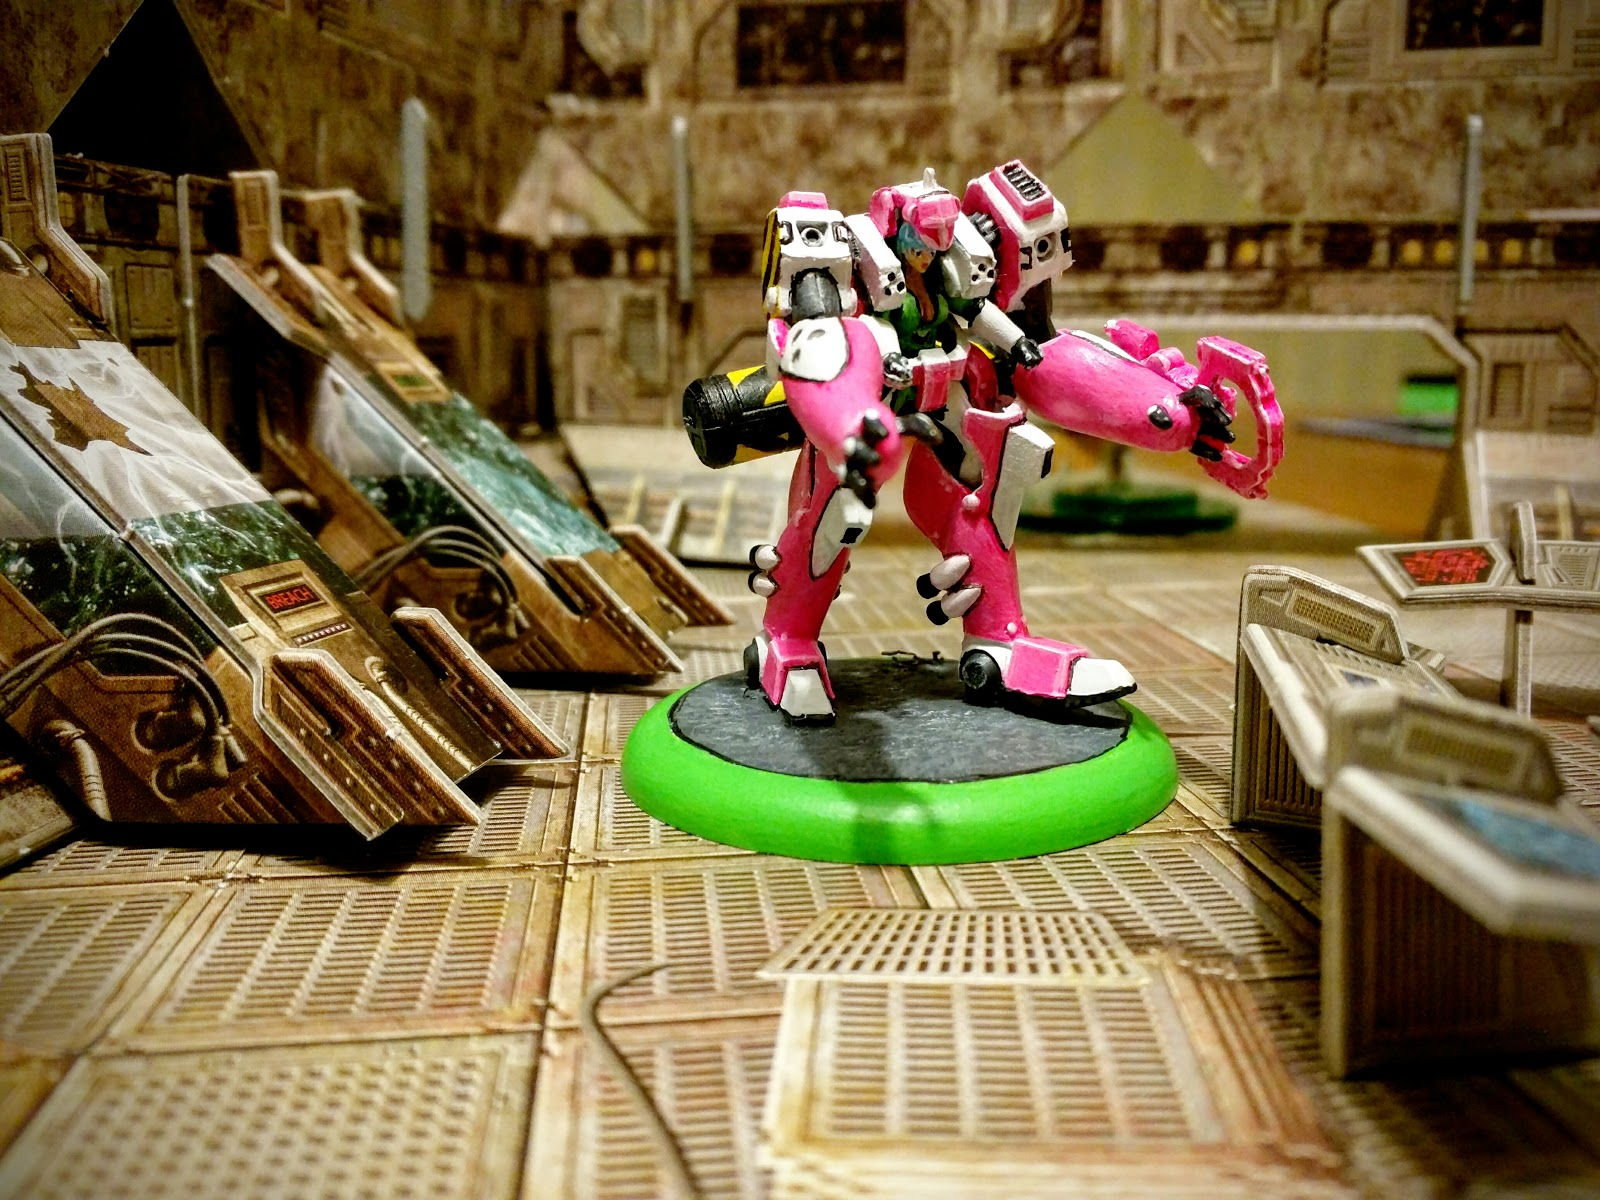 The Half Arsed Gamer July 2015 Ninja Division Painting Cerci Speed Circuit Royal Wrecker Its Pink